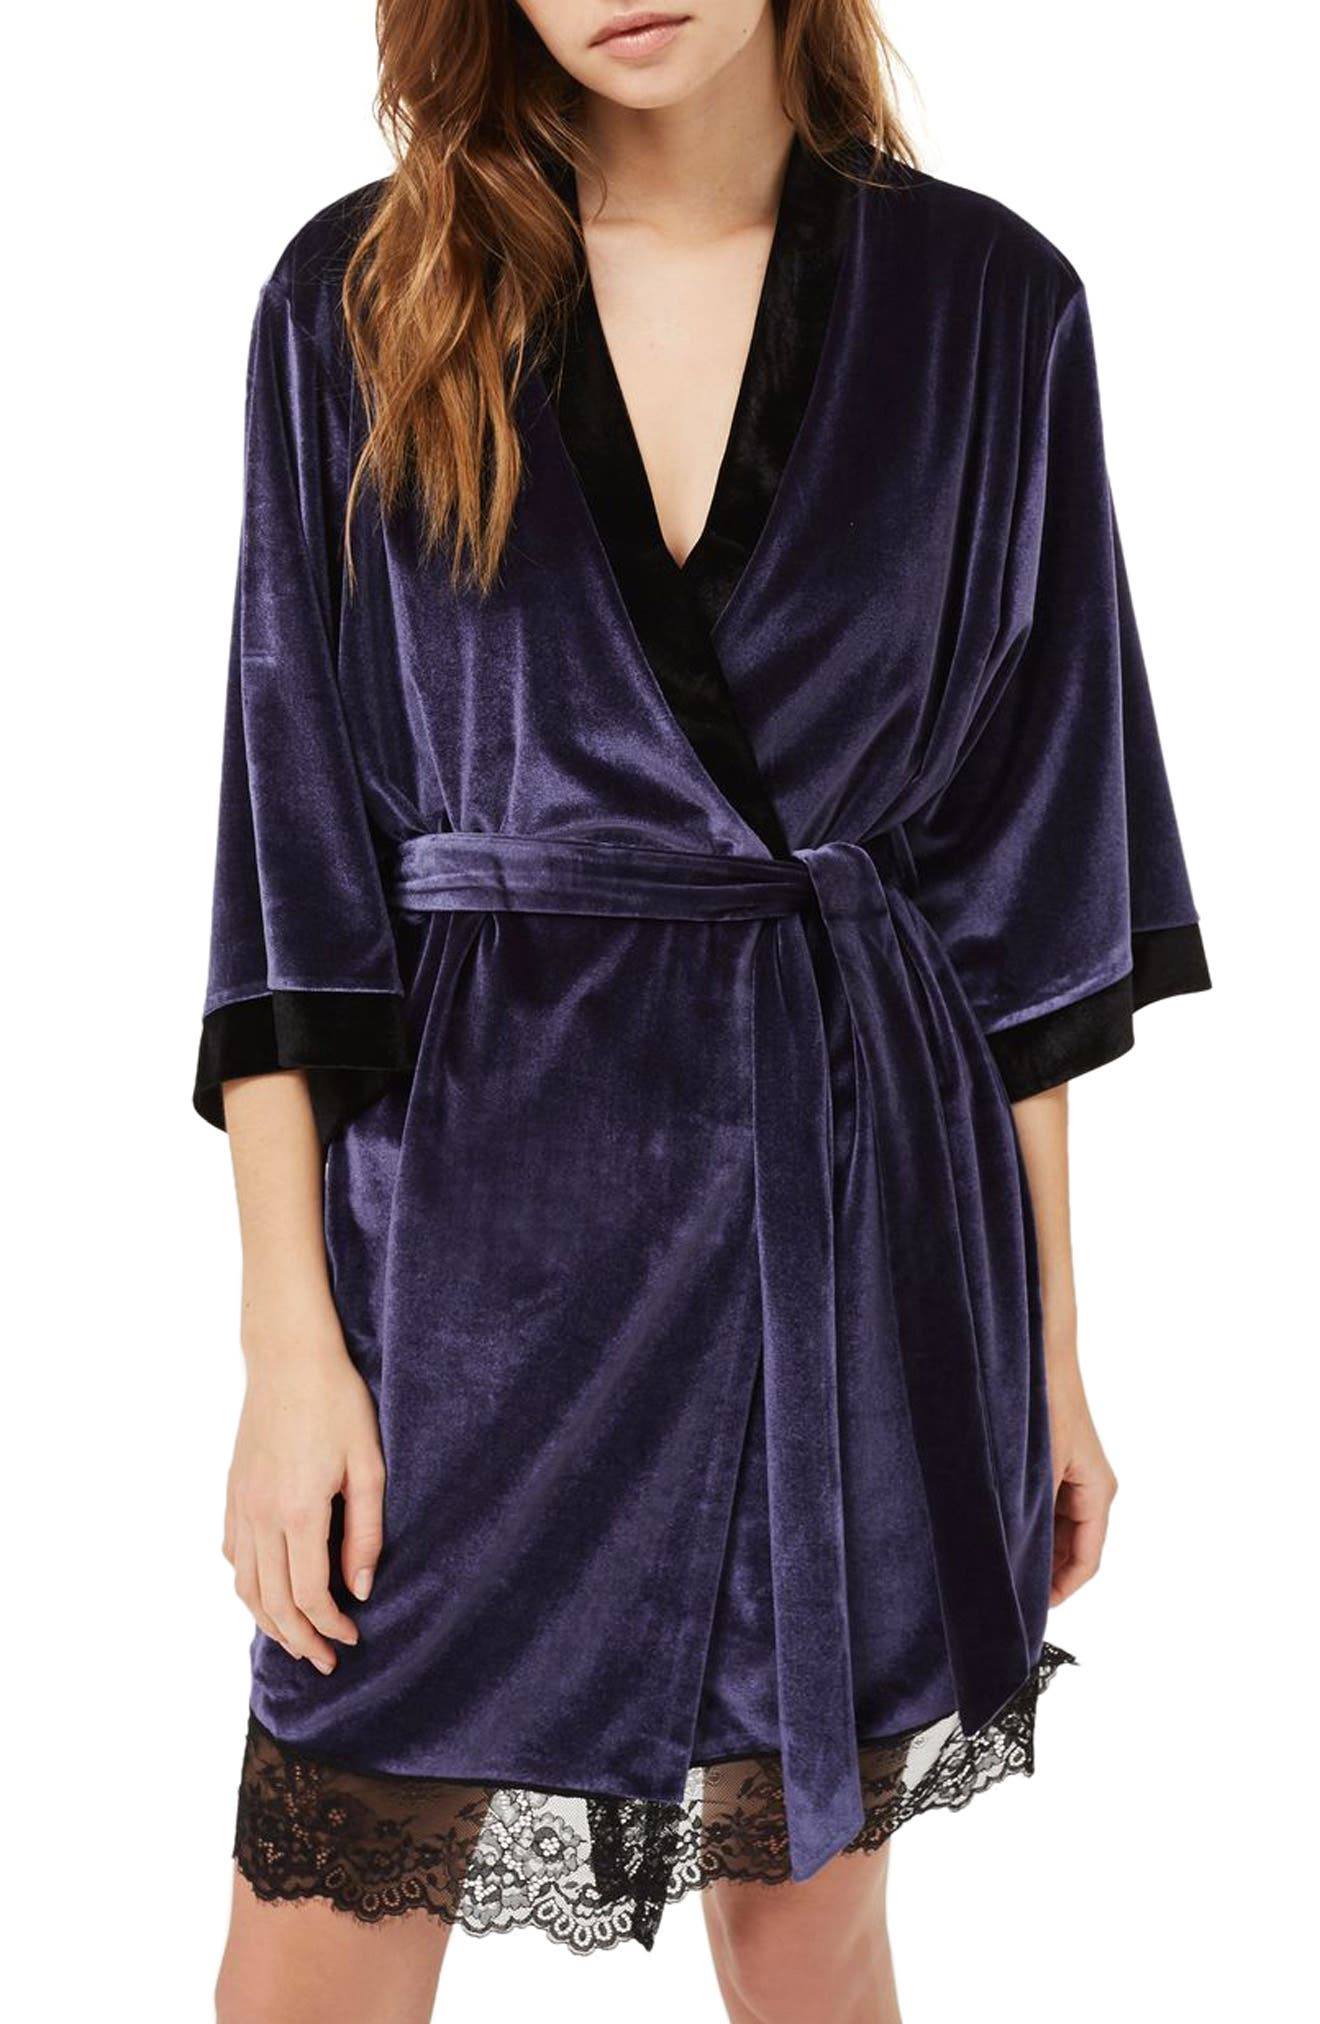 Nocturne Lace and Velvet Robe,                             Main thumbnail 1, color,                             Navy Blue